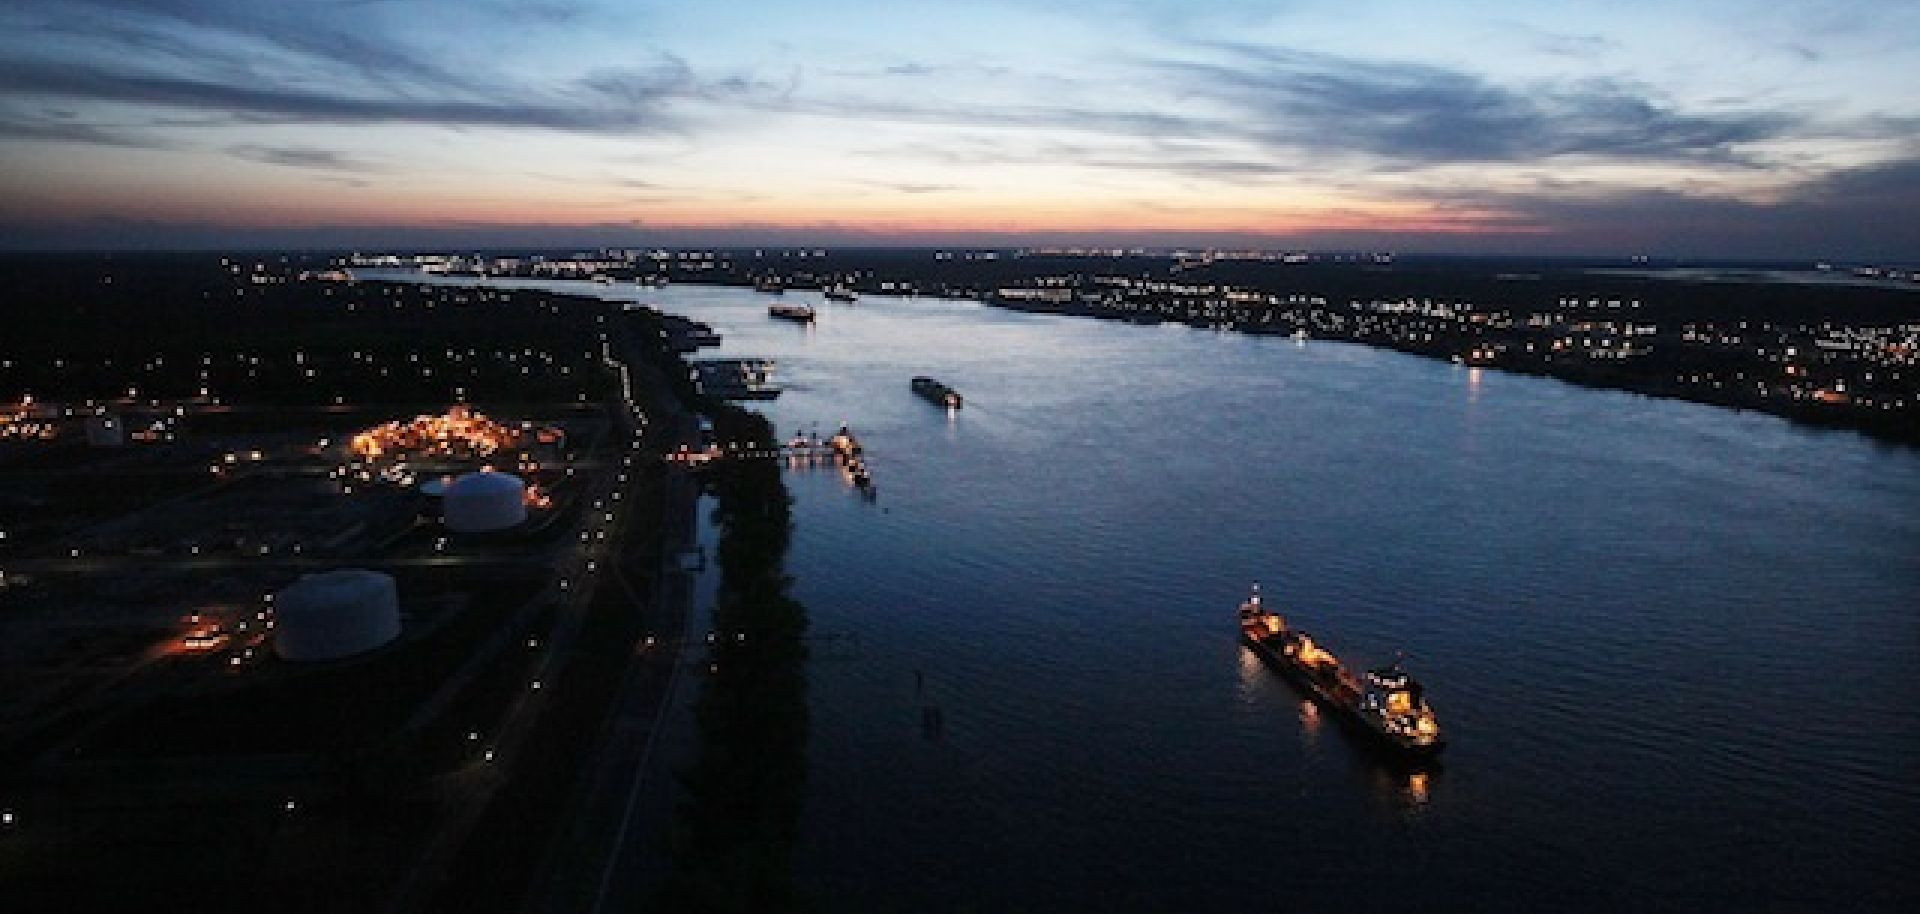 United States: The Problem of Aging Infrastructure on Inland Waterways